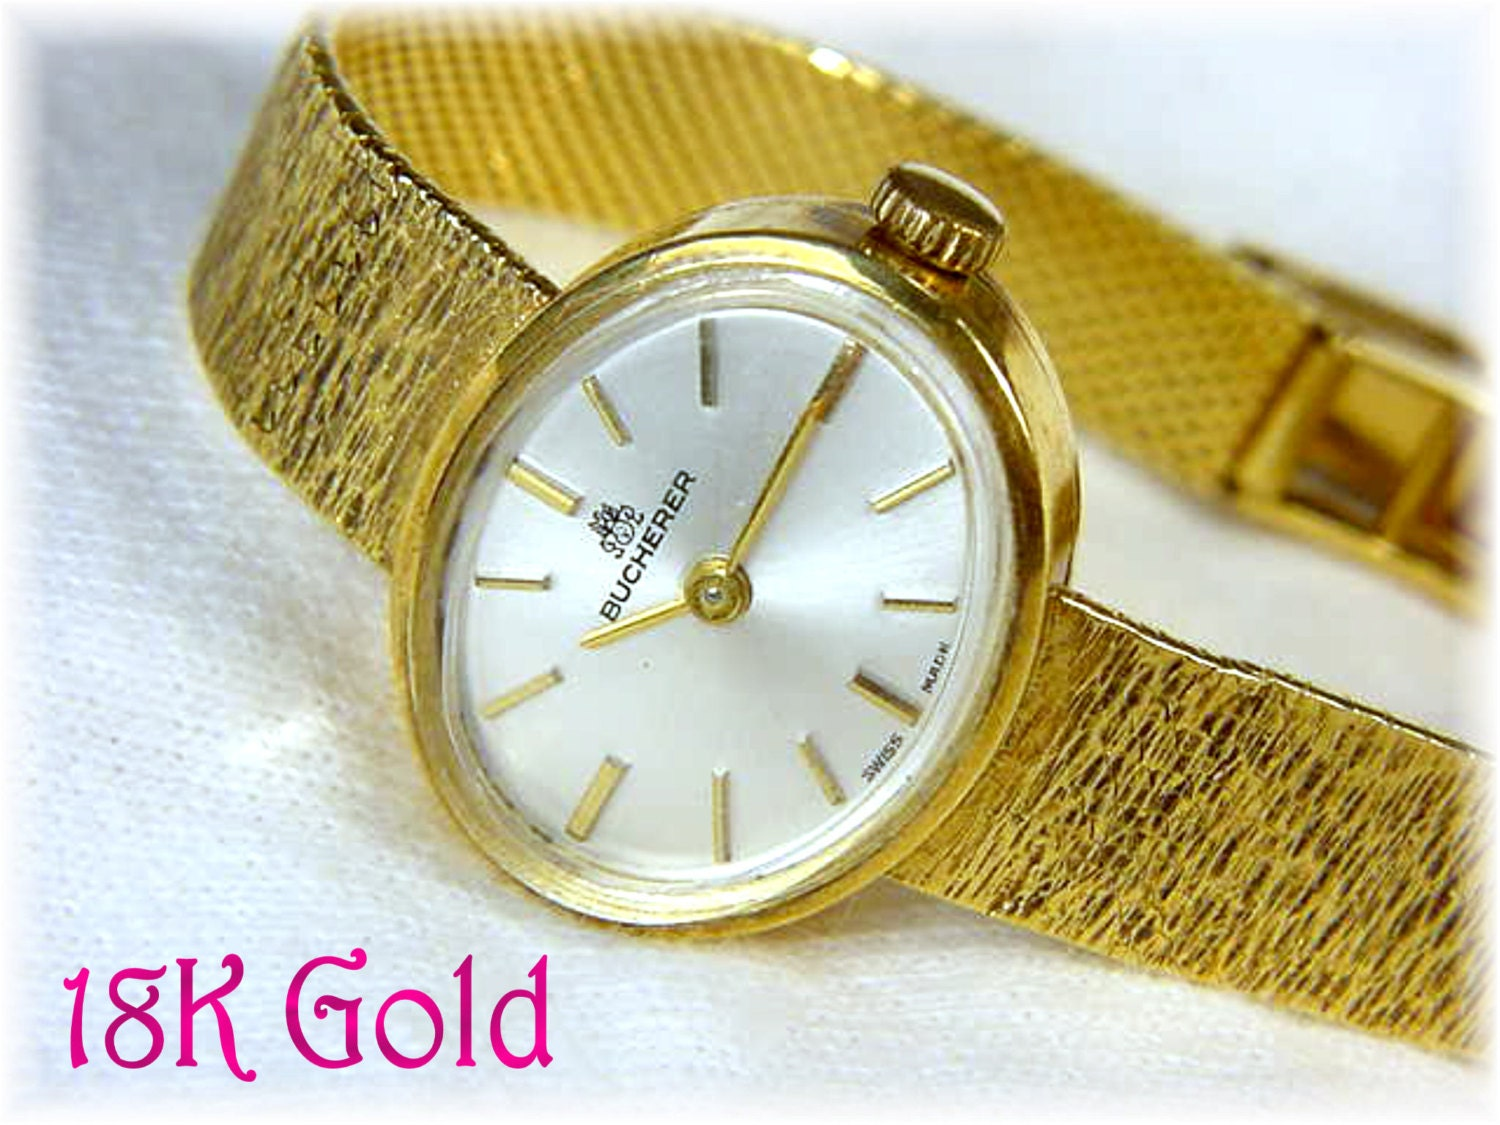 case calibre omega watches cal jewels solid gold